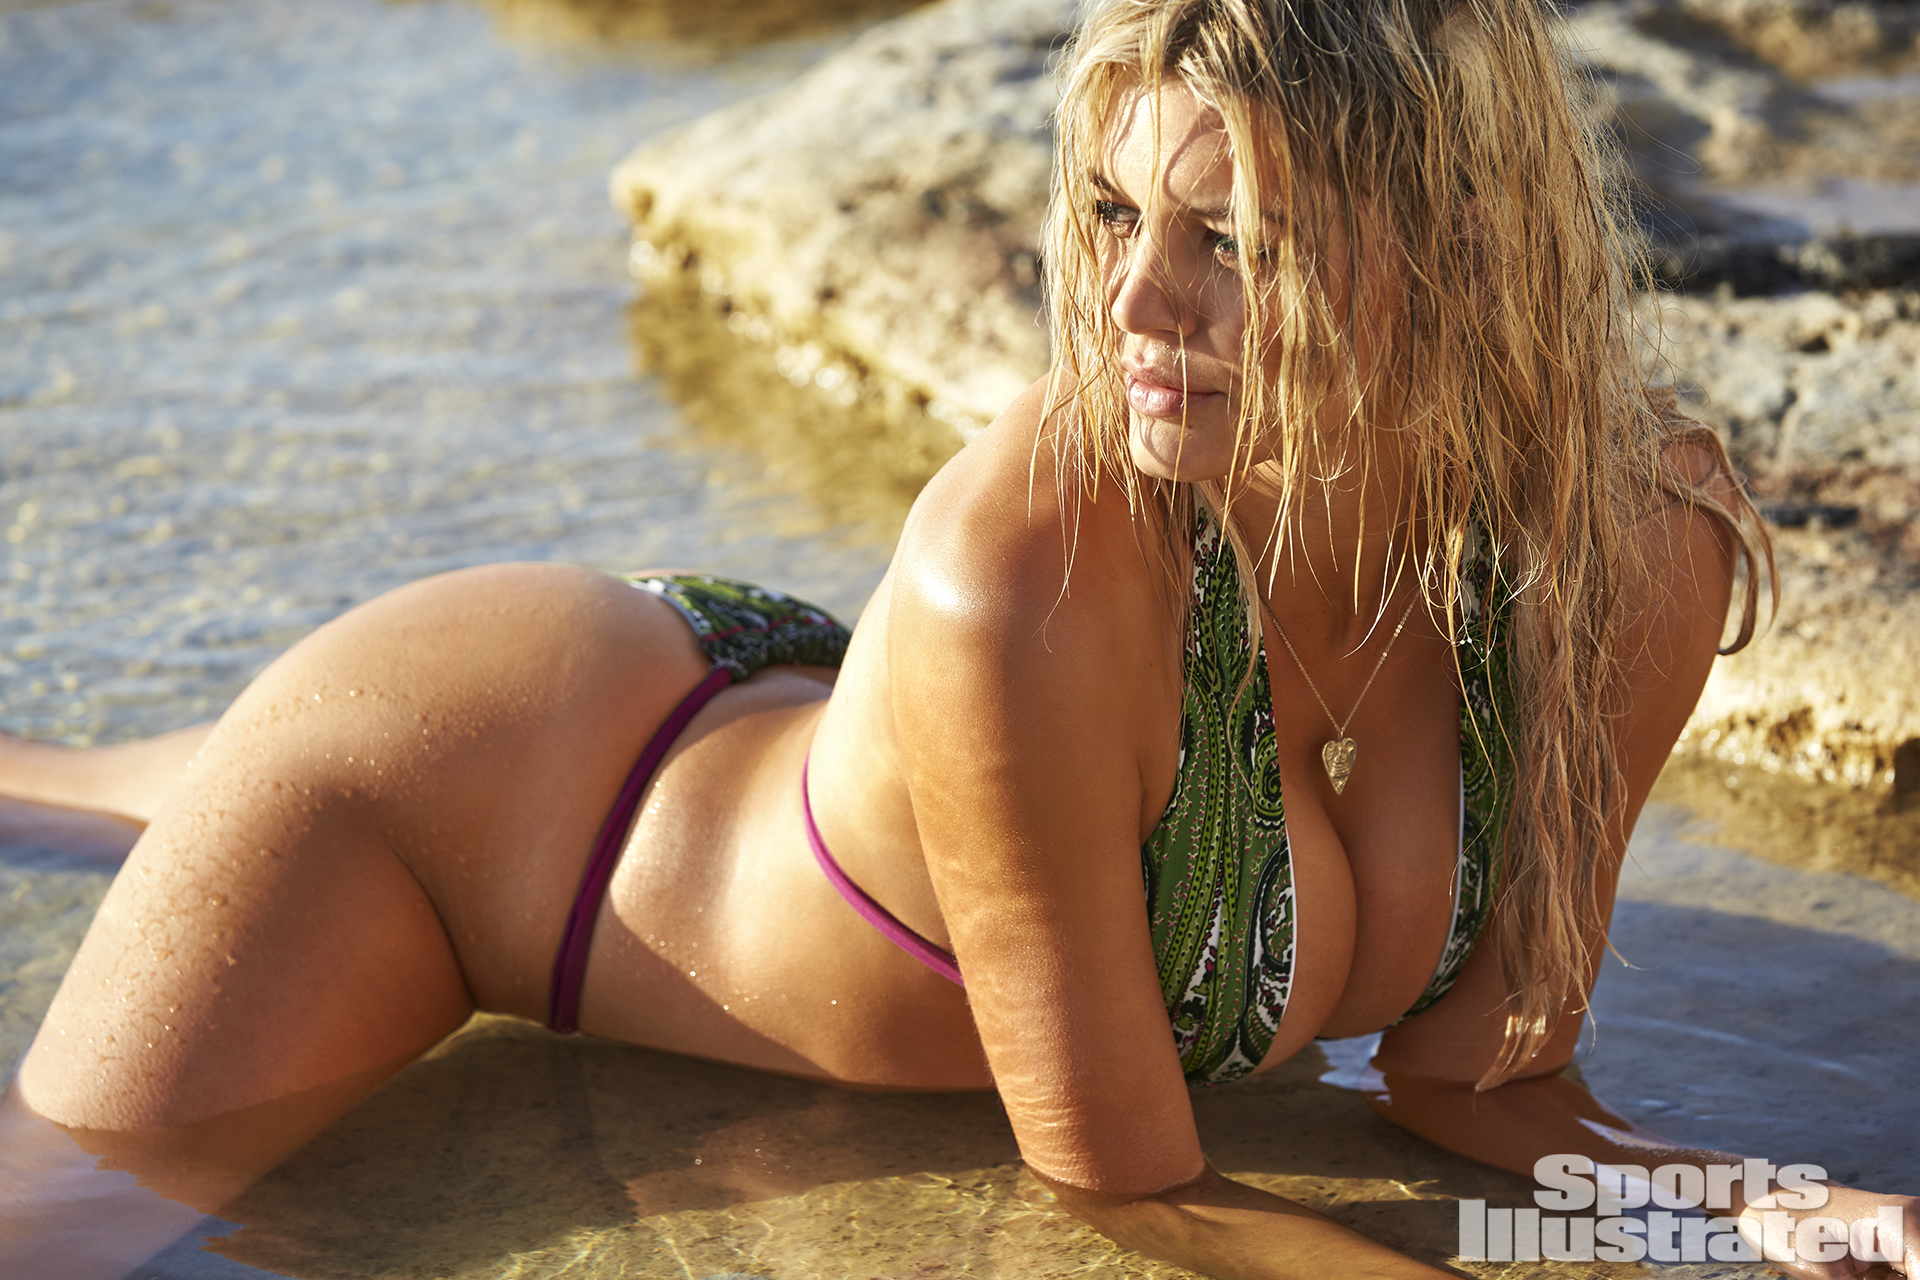 Kelly Rohrbach was photographed by Ben Watts in Malta. Swimsuit by Ola Vida.